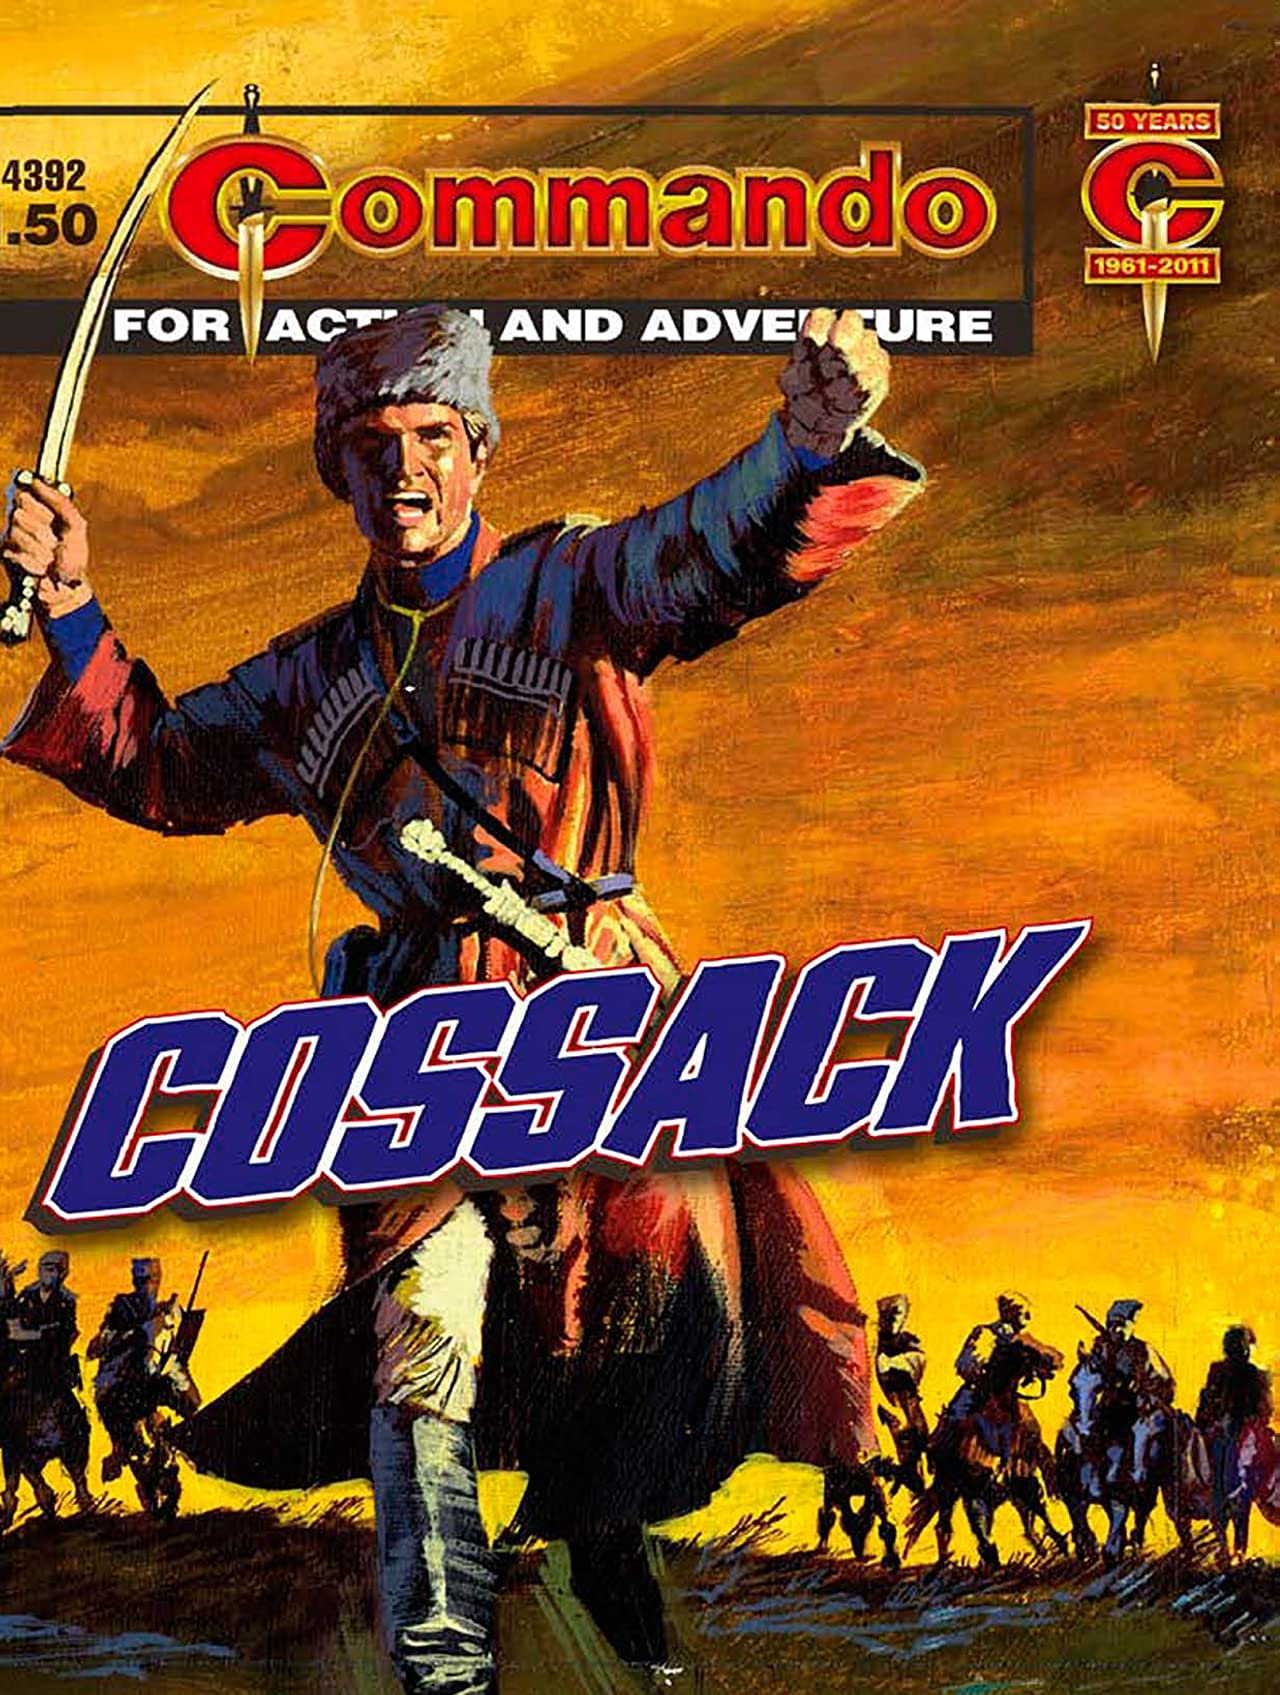 Commando #4392: Cossack